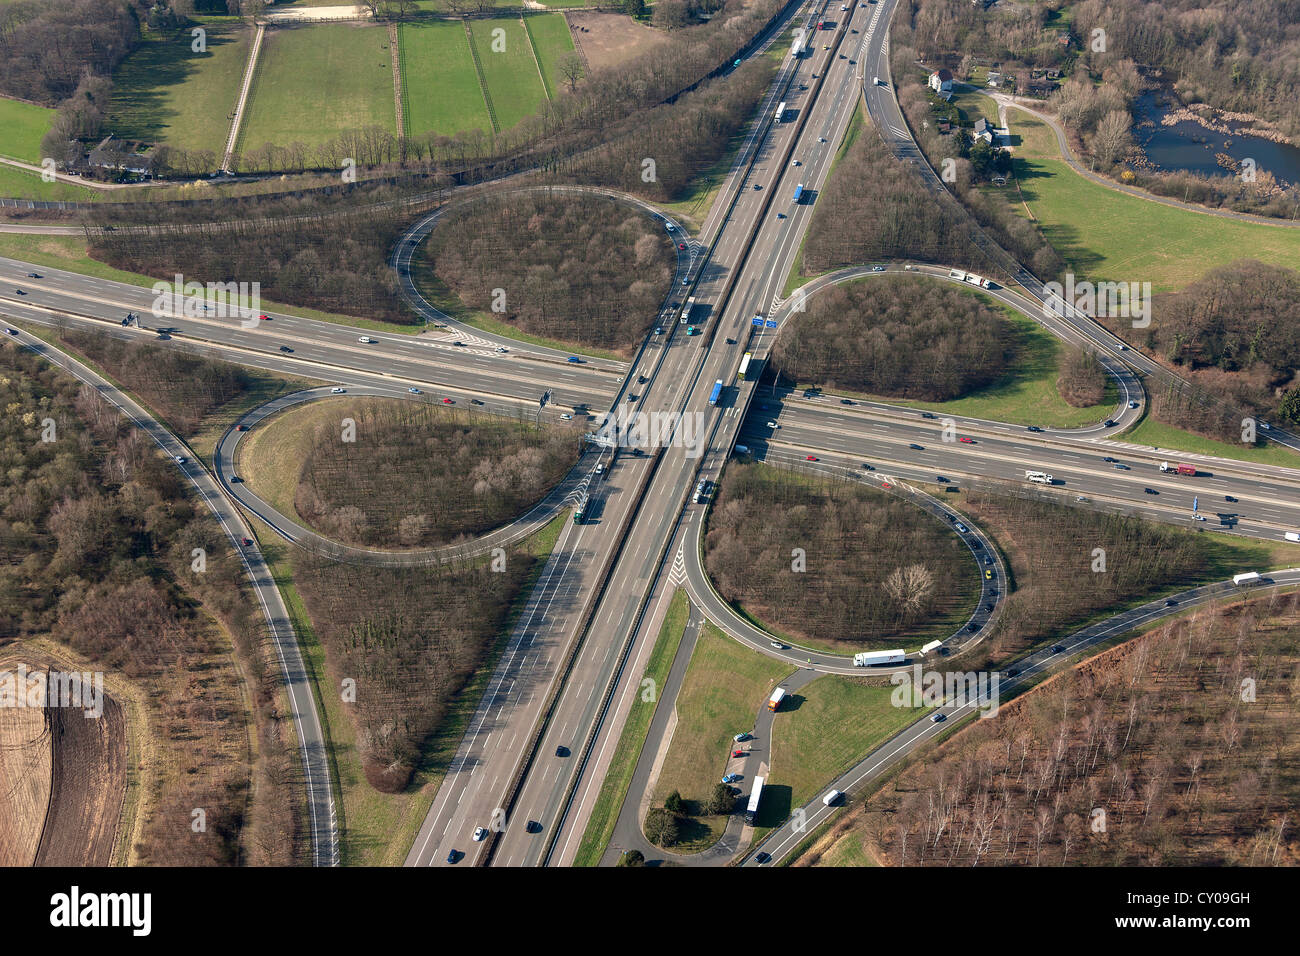 Aerial view, intersection of the A46 and A3 motorways, Autobahnkreuz Hilden, Rhineland, North Rhine-Westphalia - Stock Image